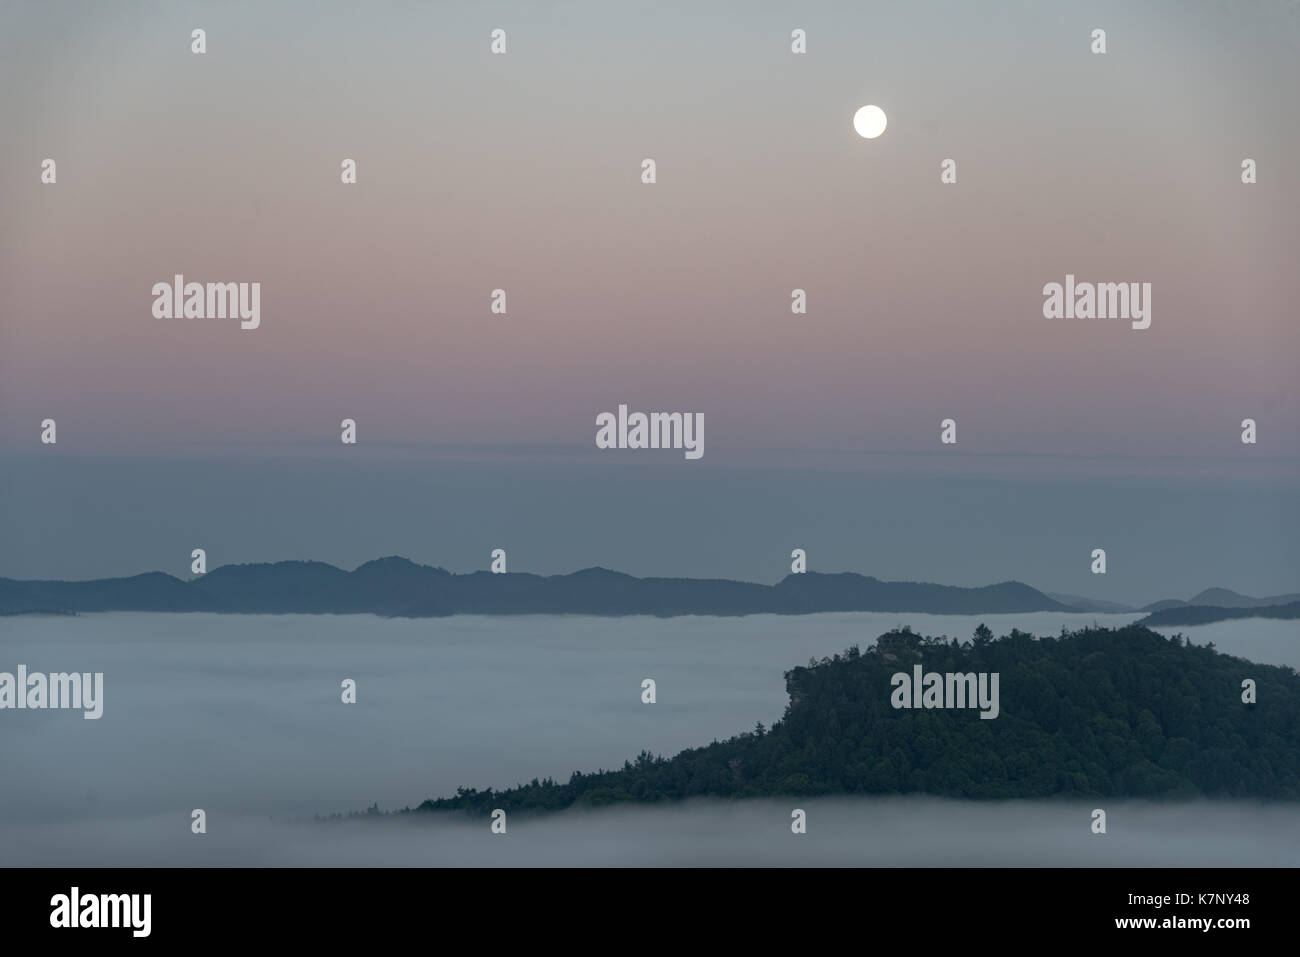 View from Lindelbrunn on a full moon night - Stock Image